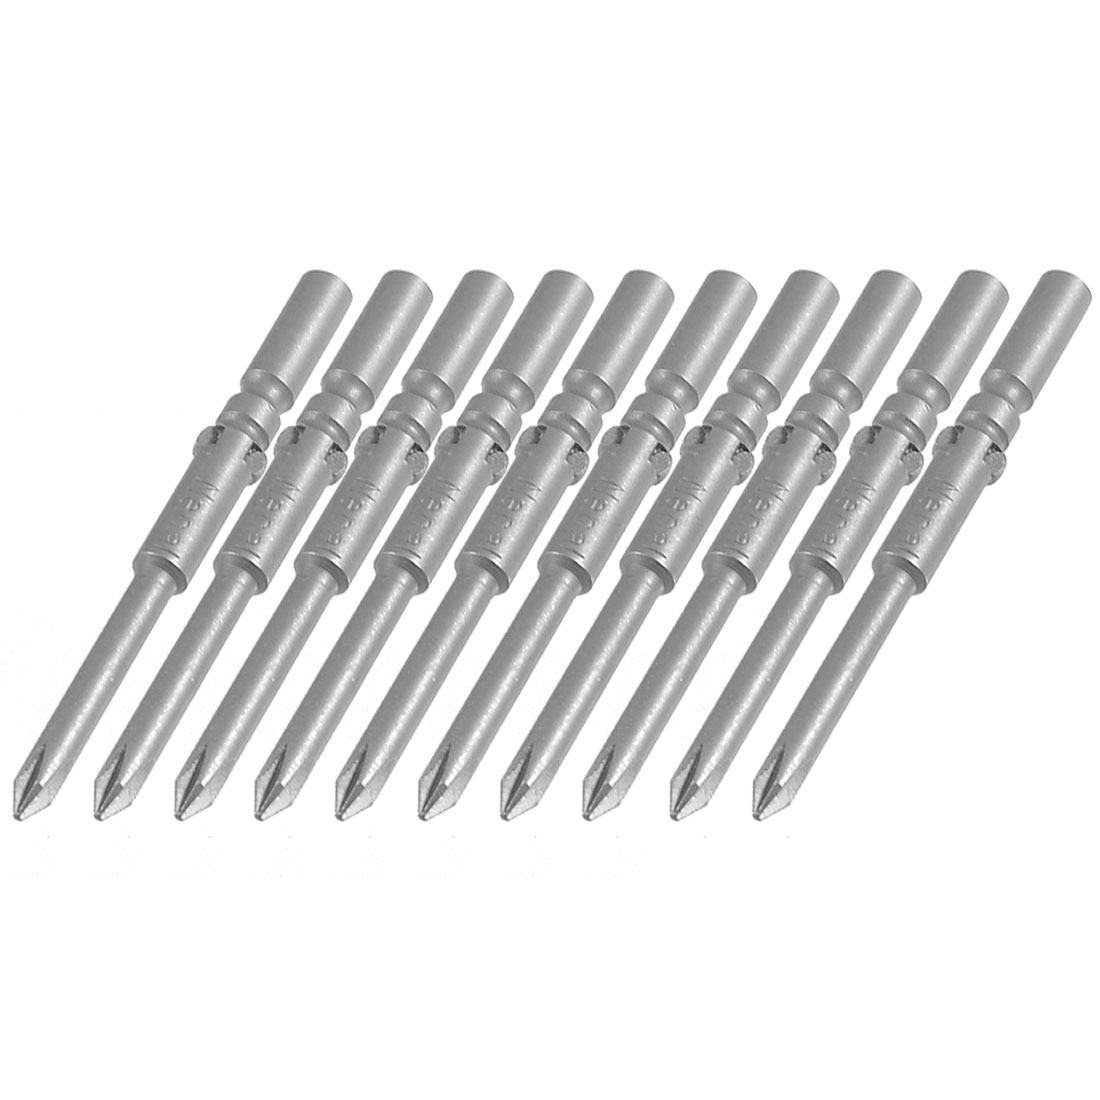 10 Pcs 5mm x 60mm x 3.5mm Magnetic Phillips PH0 Screwdriver Bits